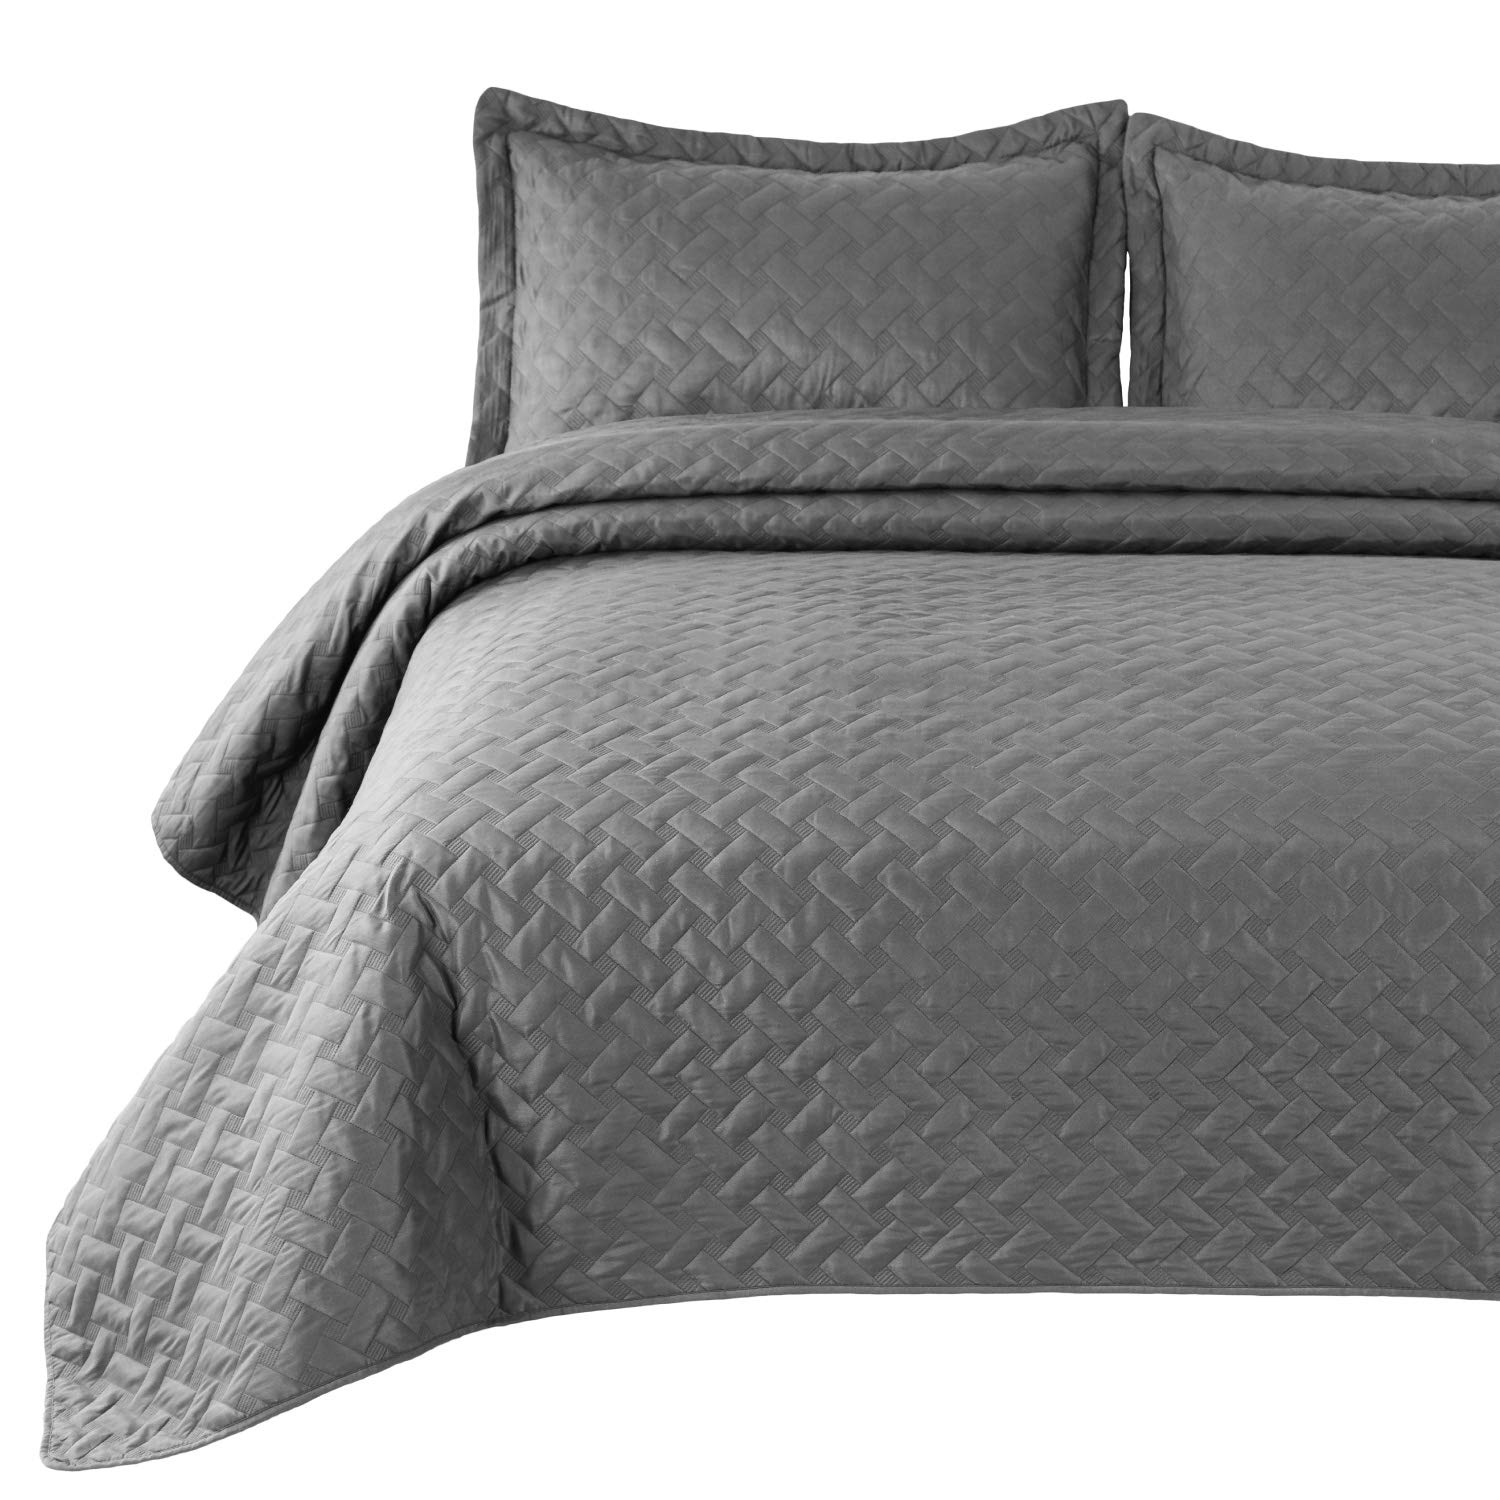 Bedsure Quilt Set Grey Full/Queen Size (90''x96'') - Basketweave Pattern Bedspread - Soft Microfiber Lightweight Coverlet for All Season - 3 Piece (Includes 1 quilt, 2 shams)